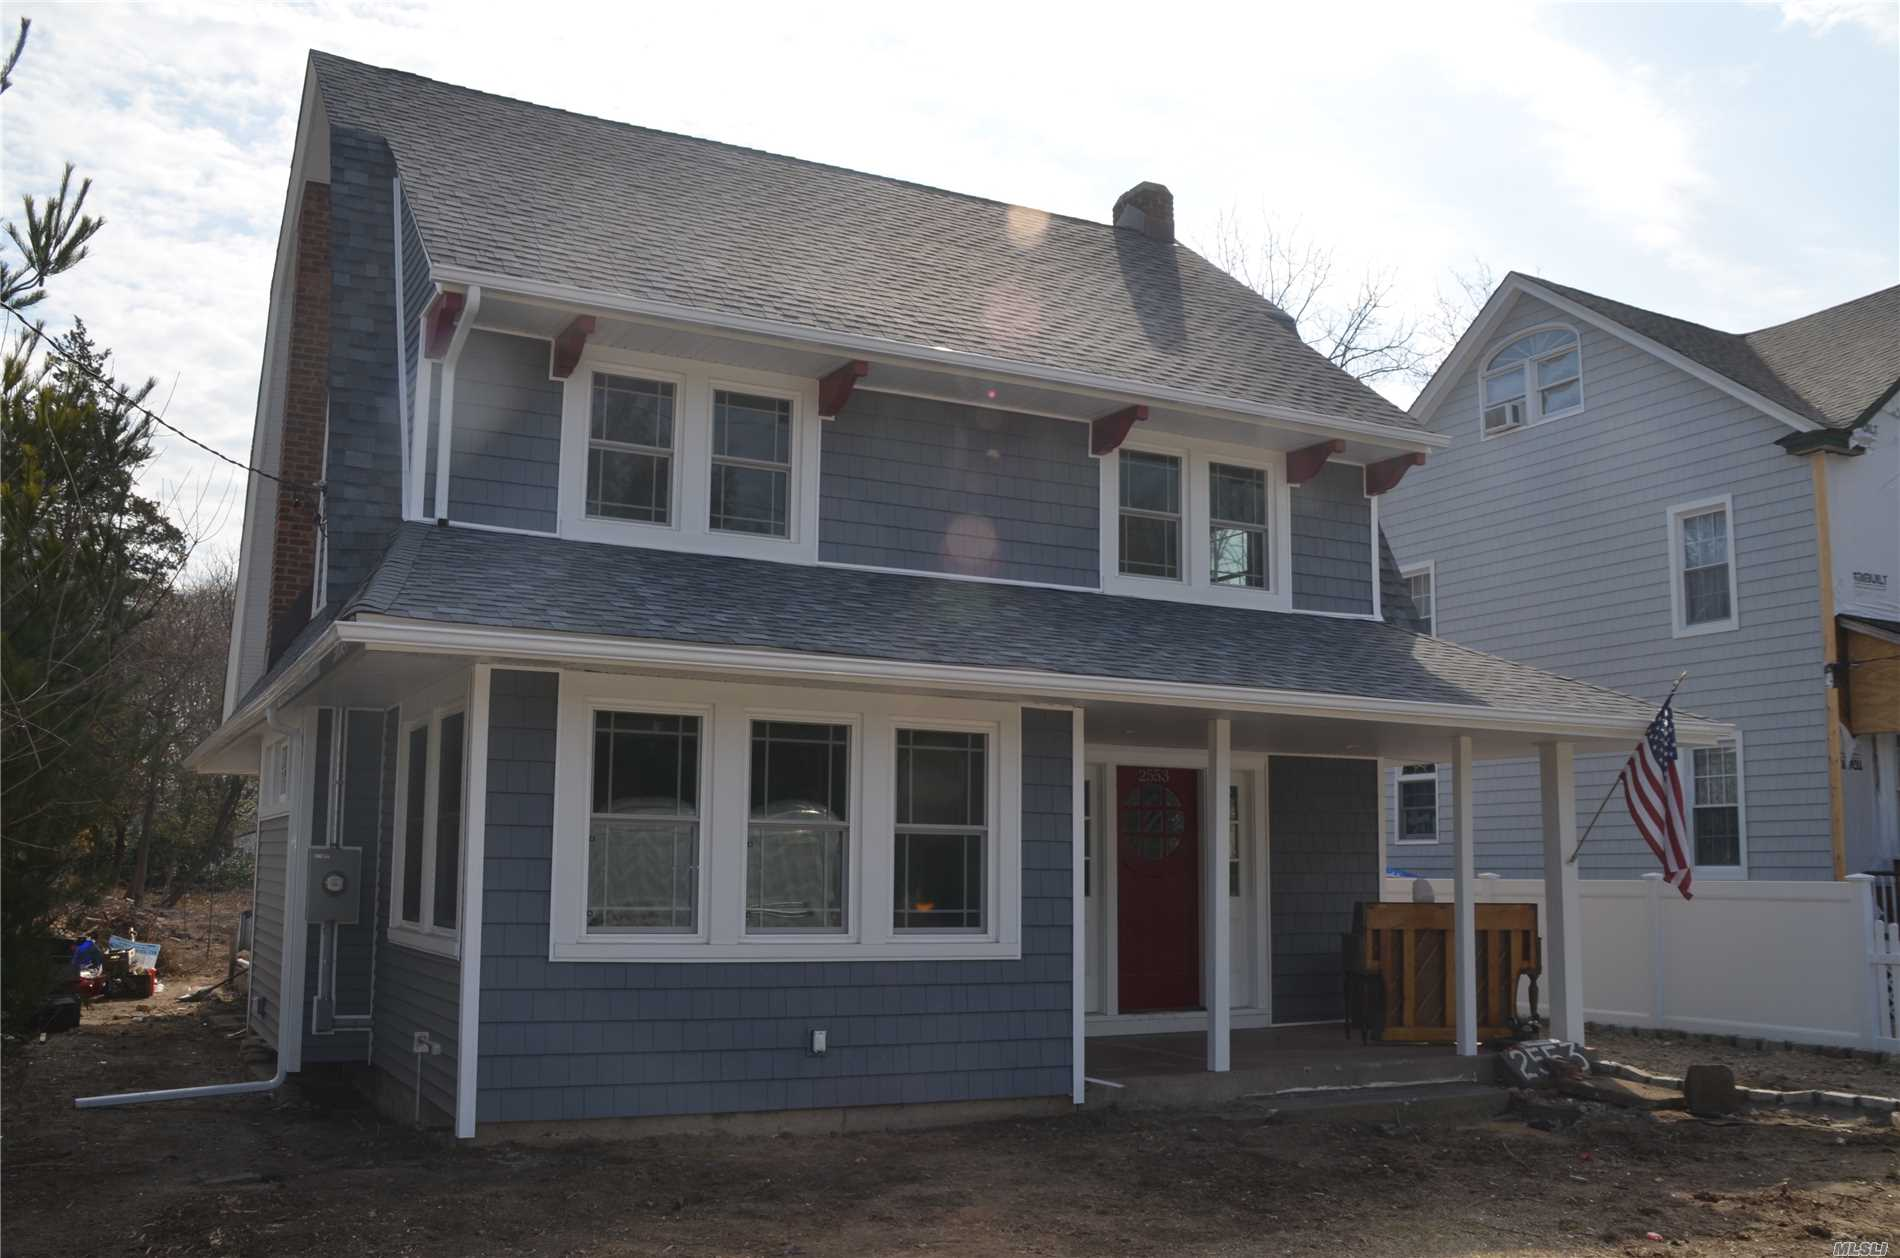 Mint Condition 3/4 Bedroom, 2.5 Bathroom Colonial located in the heart of downtown Baldwin, minutes to the LIRR. This home features an OPEN FLOOR plan, wood floors,  new roof, new siding, new windows, large open kitchen, full finished basement and a huge yard. Too much too list